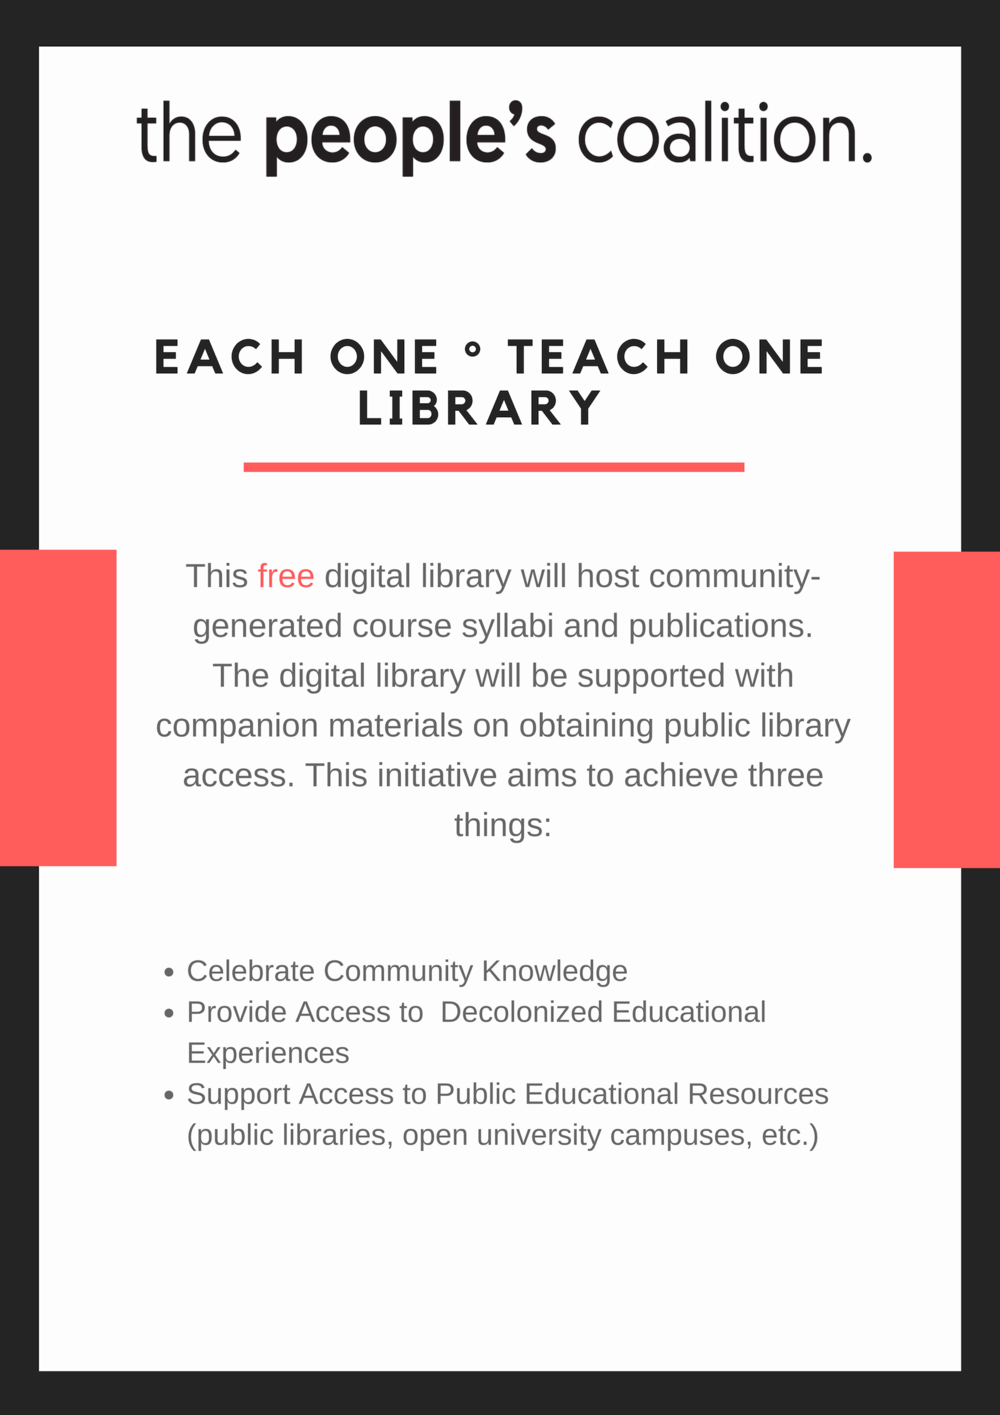 Each One ° Teach One Library.jpg